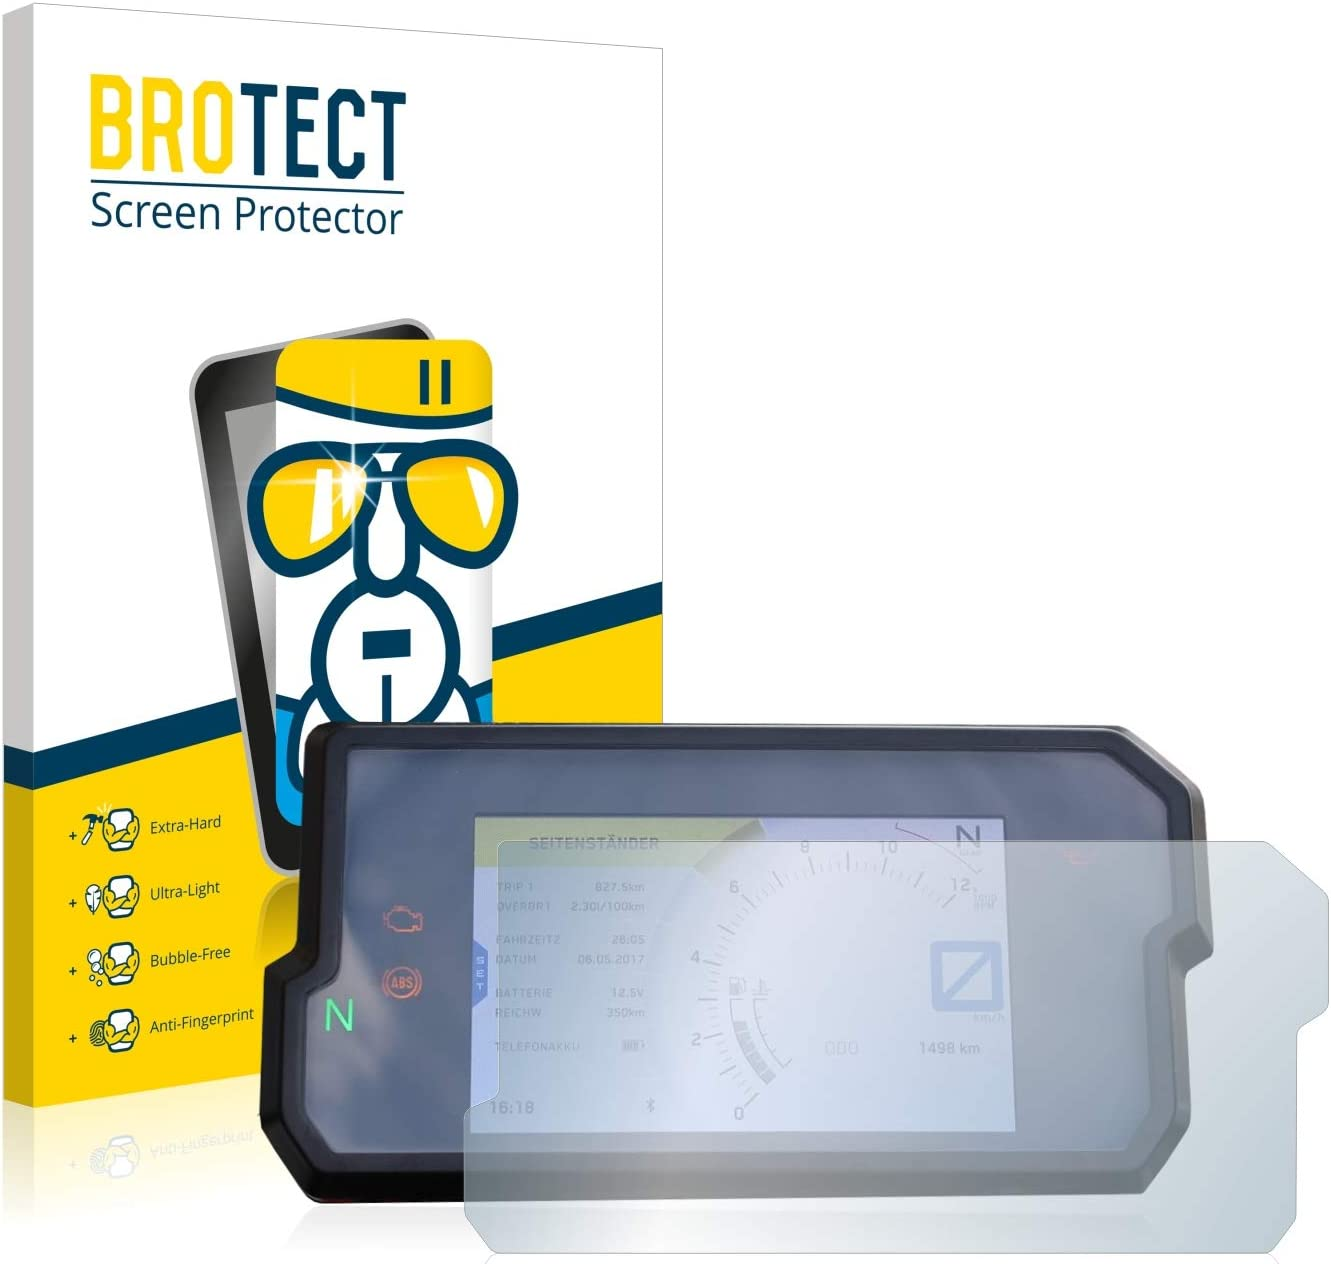 AirGlass brotect Glass Screen Protector compatible with KTM 790 Adventure 2019 9H Glass Protector